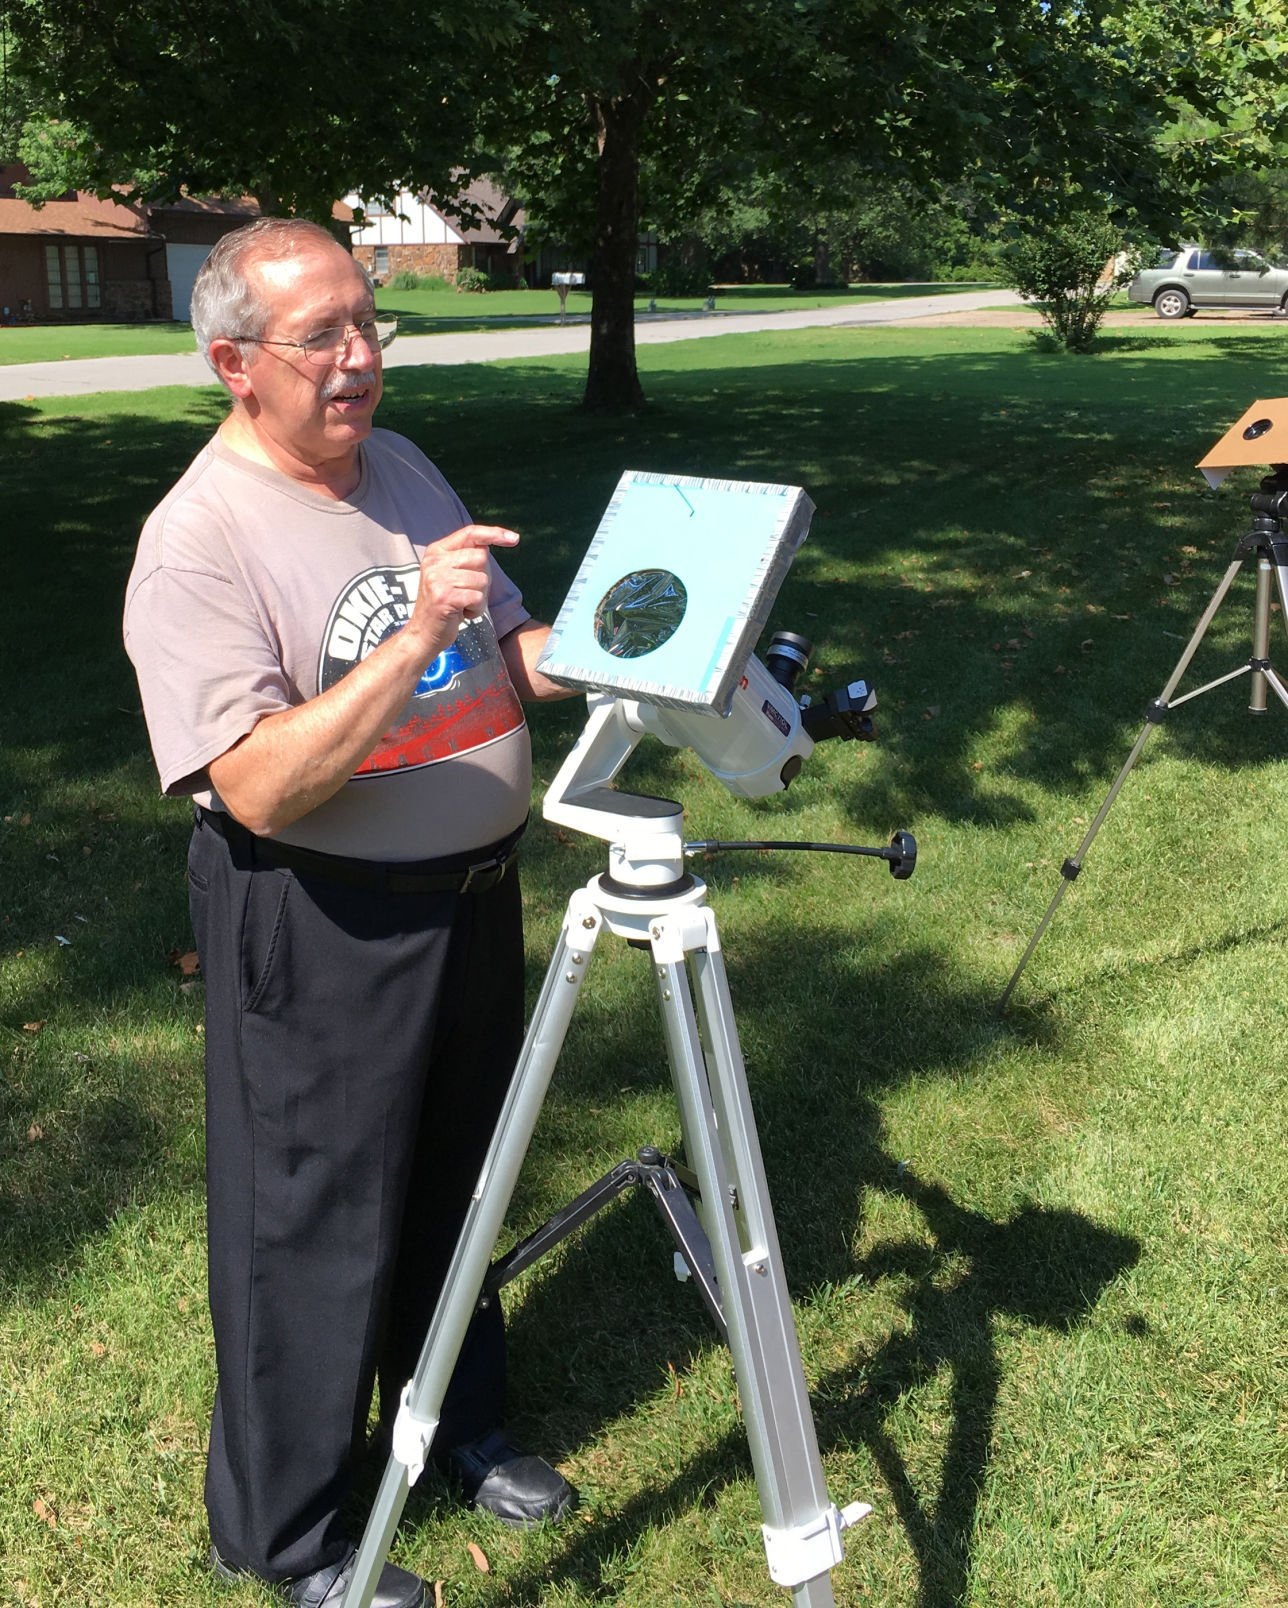 View August's solar eclipse safely with these tips